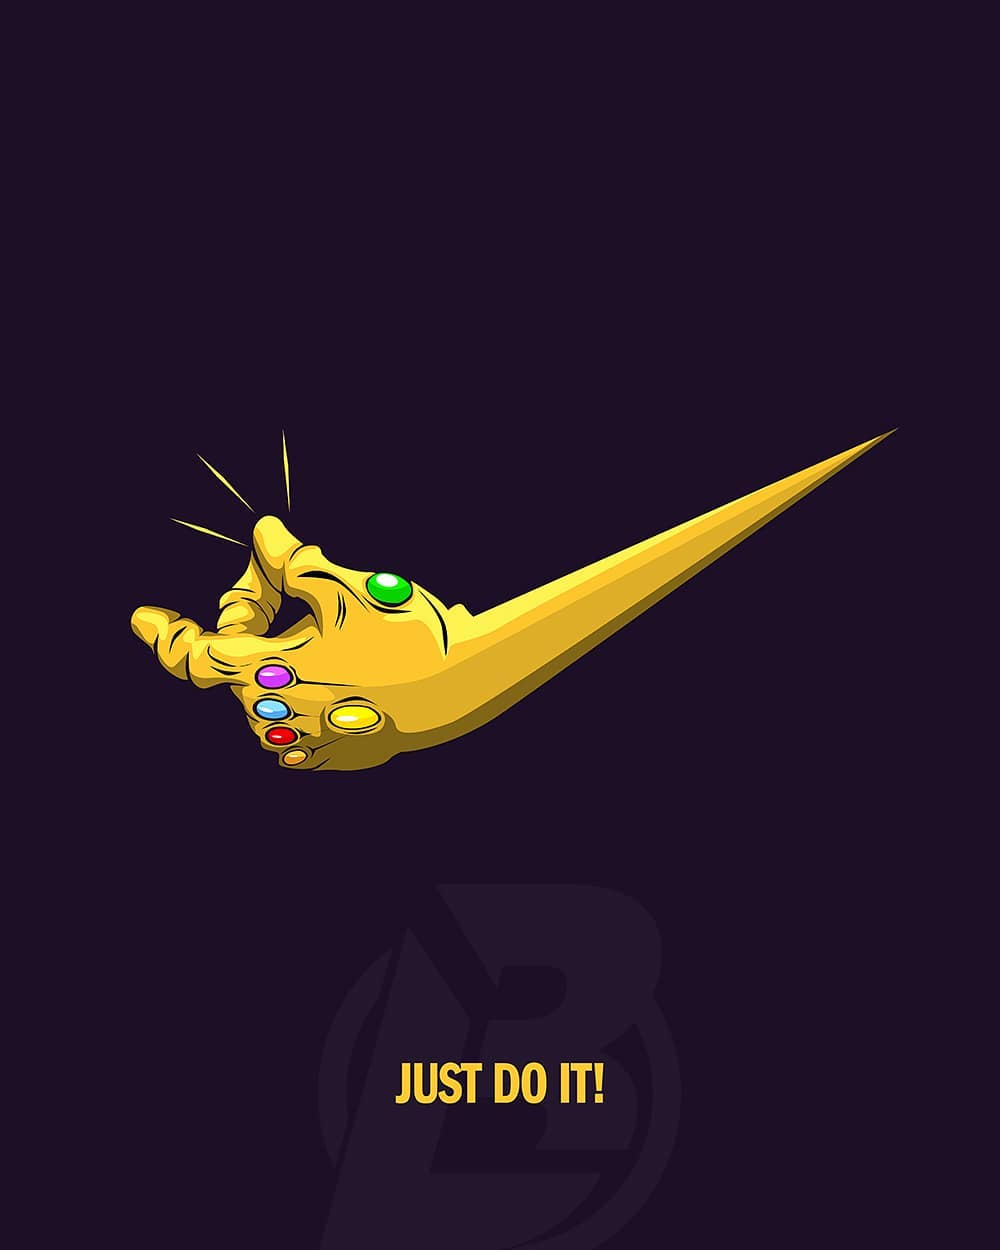 Nike - Just Do It by Bosslogic on Inspirationde